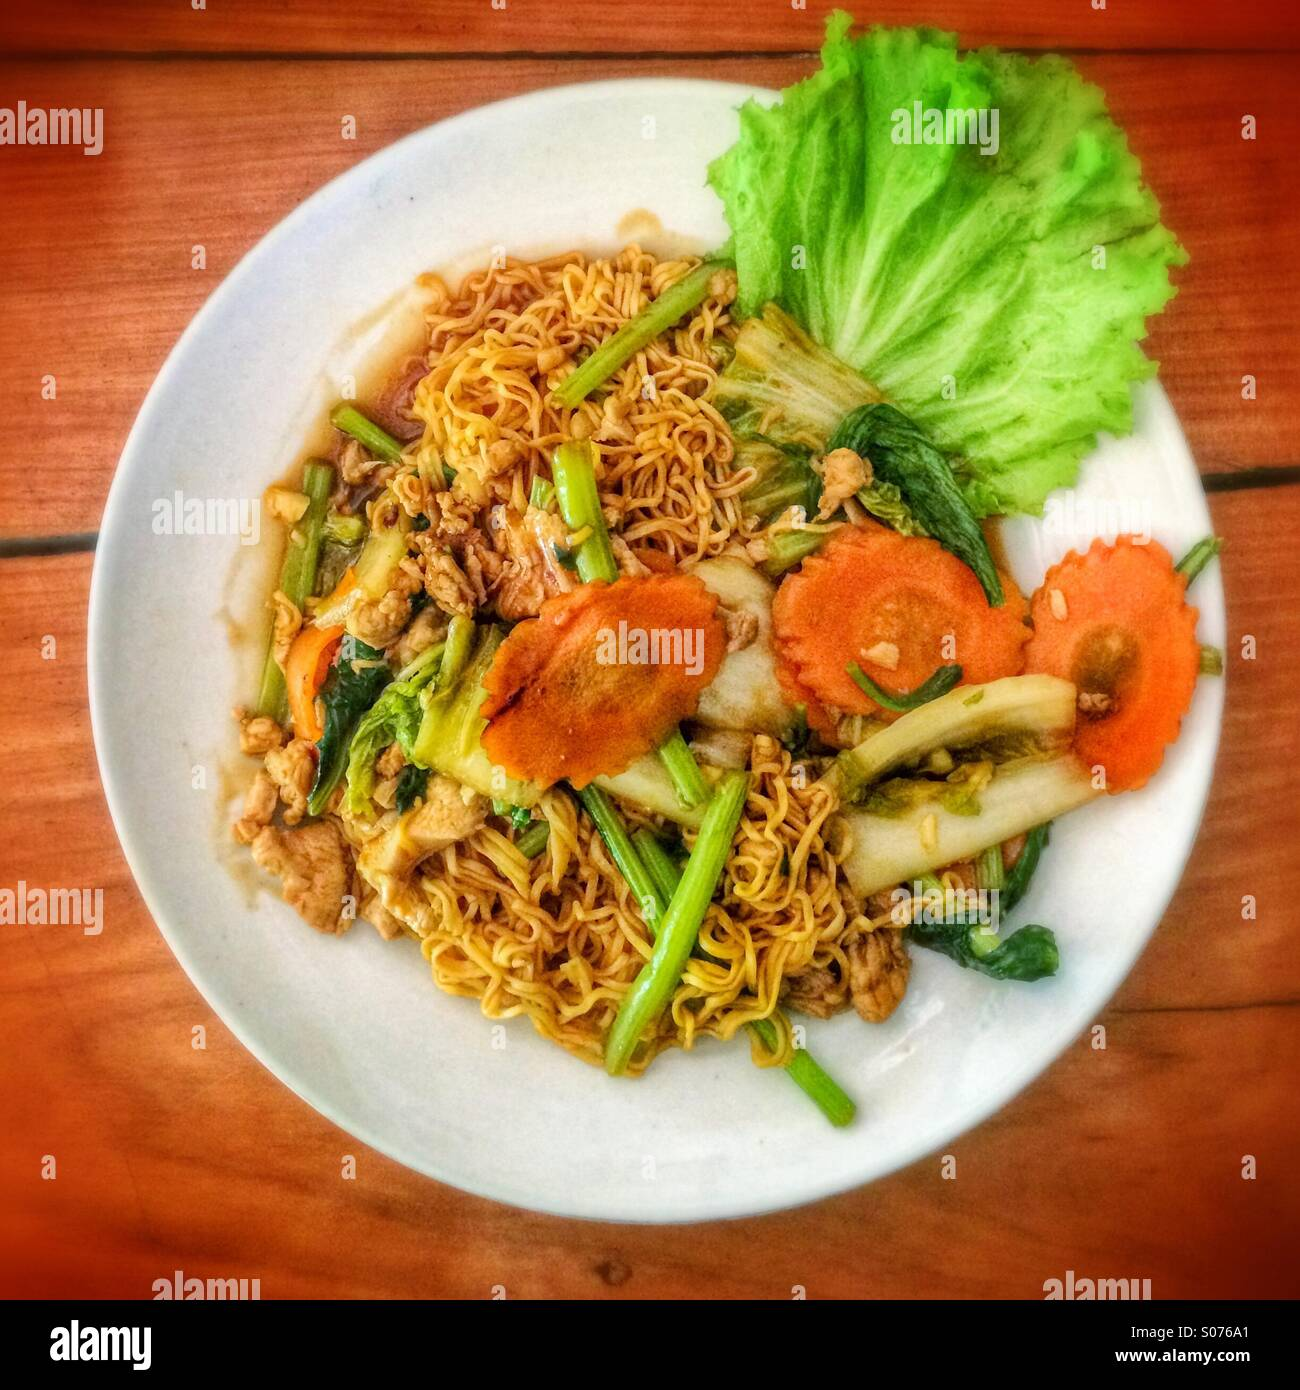 Cambodian fried noodles with chicken - Stock Image